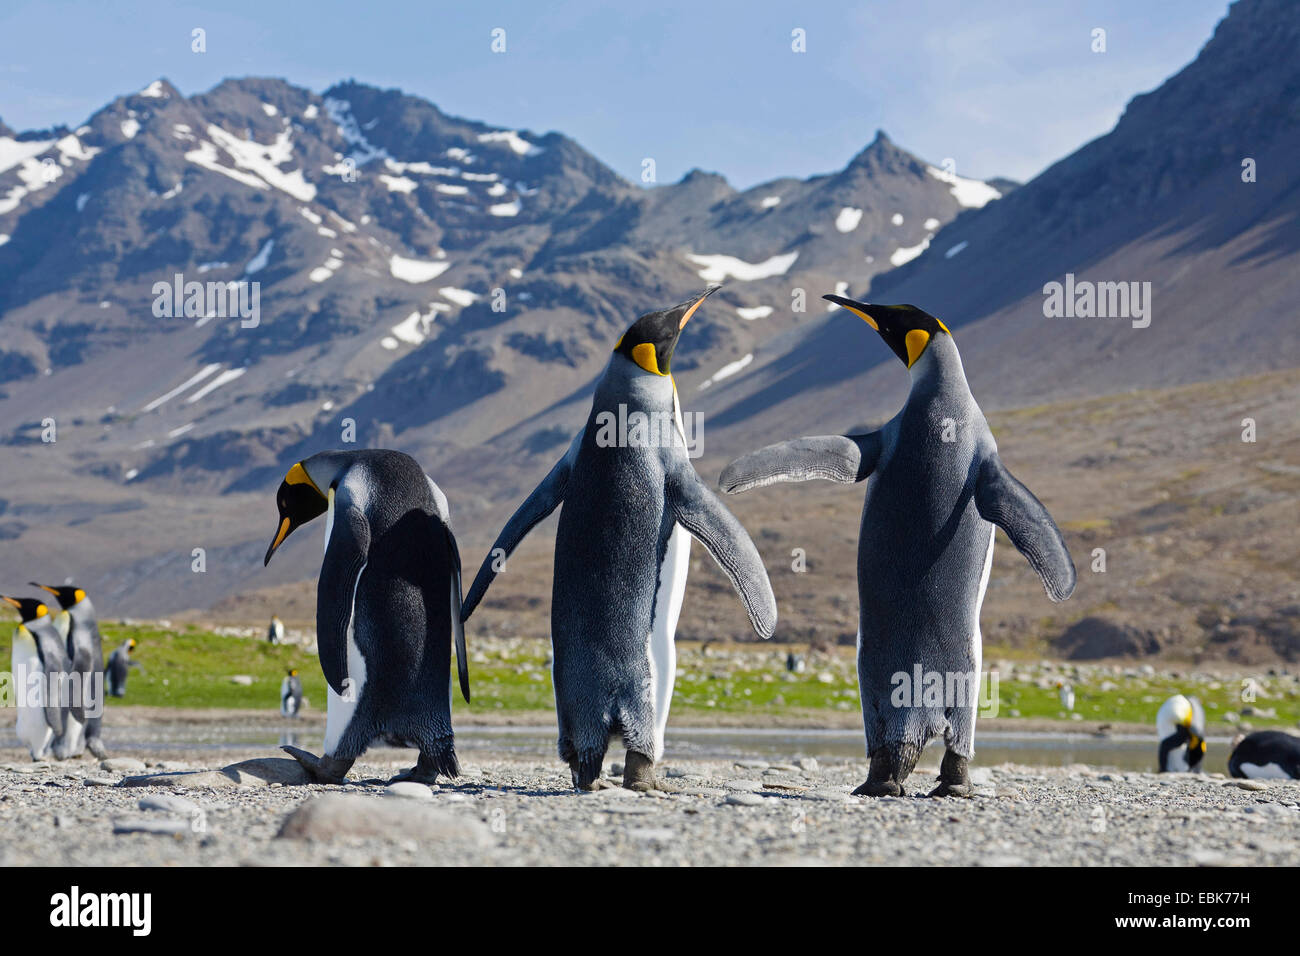 king penguin (Aptenodytes patagonicus), three penguins with outstretched wings, Suedgeorgien, St. Andrews Bay - Stock Image